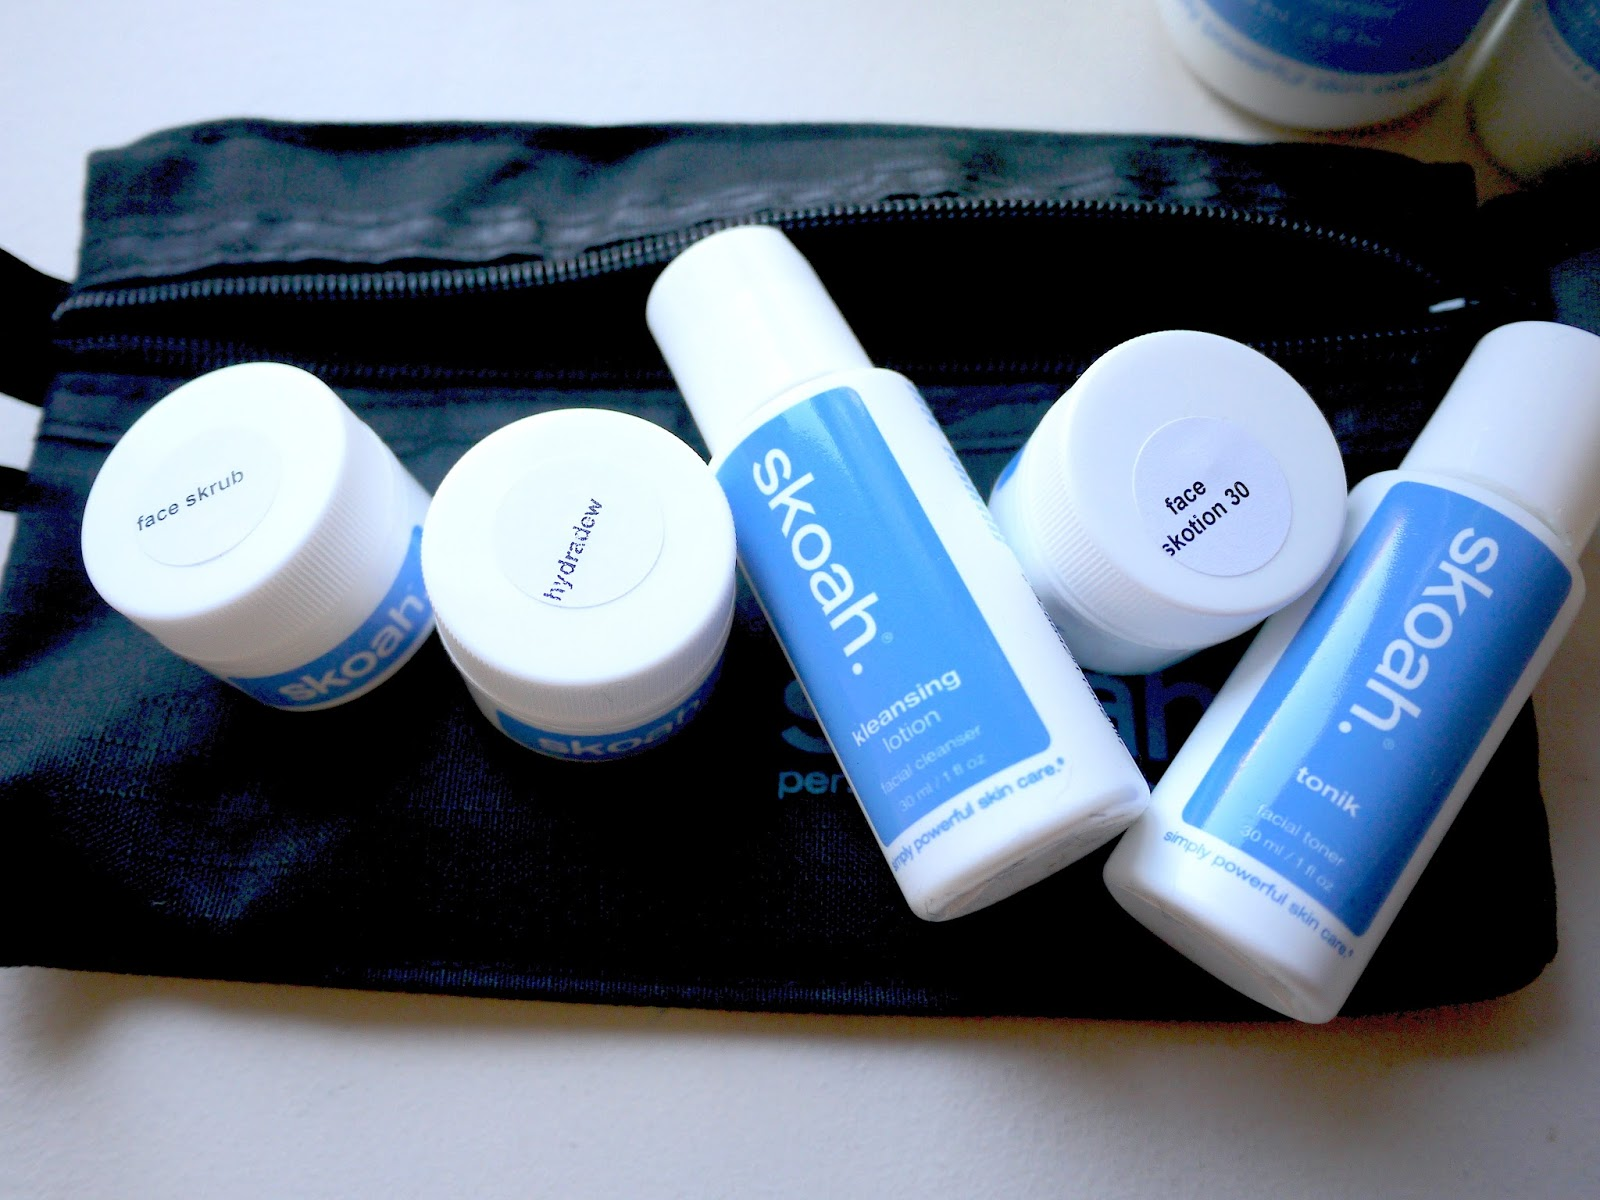 skoah even-keeled kit review kleasning lotion, face skrub, tonik, face skotion